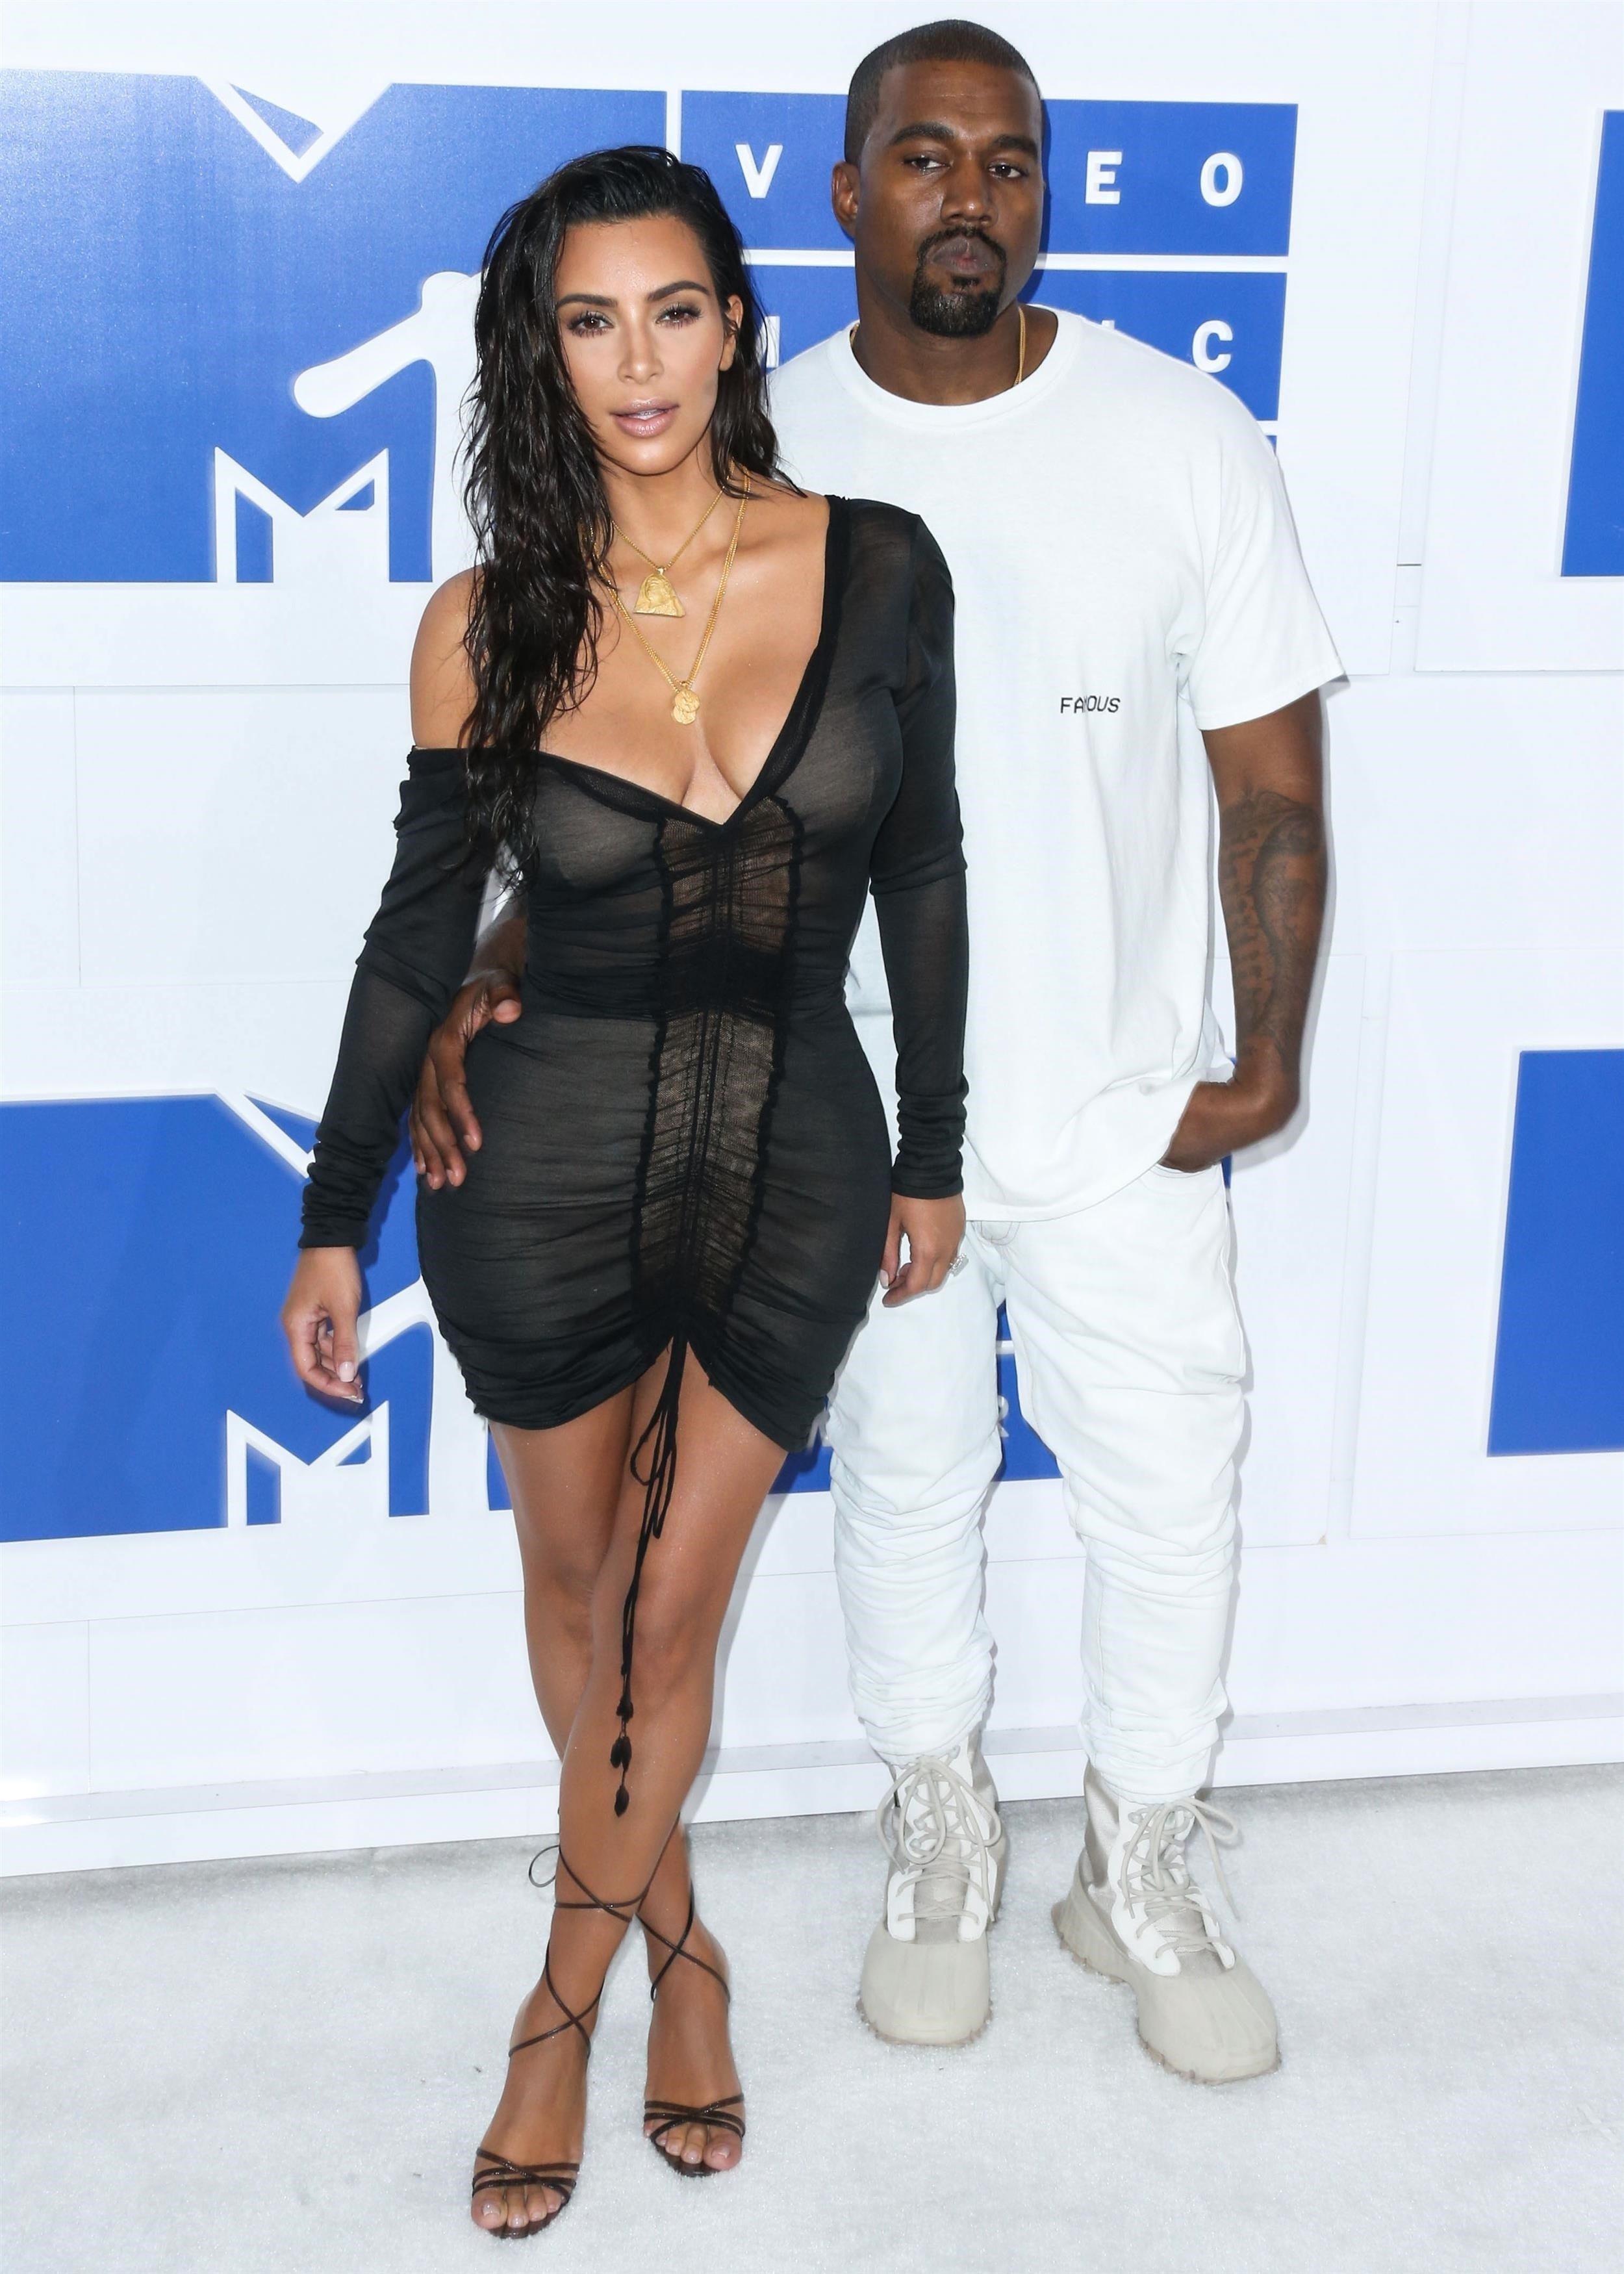 Kim Kardashian West And Husband Kanye West Arrive At The 2016 MTV Video Music Awards Held At Madison Square Garden On August 28, 2016 In Manhattan, New York City. **FILE PHOTOS** **SHOT ON 08/28/2016** КРЕДИТ Backgrid USA/Legion Media